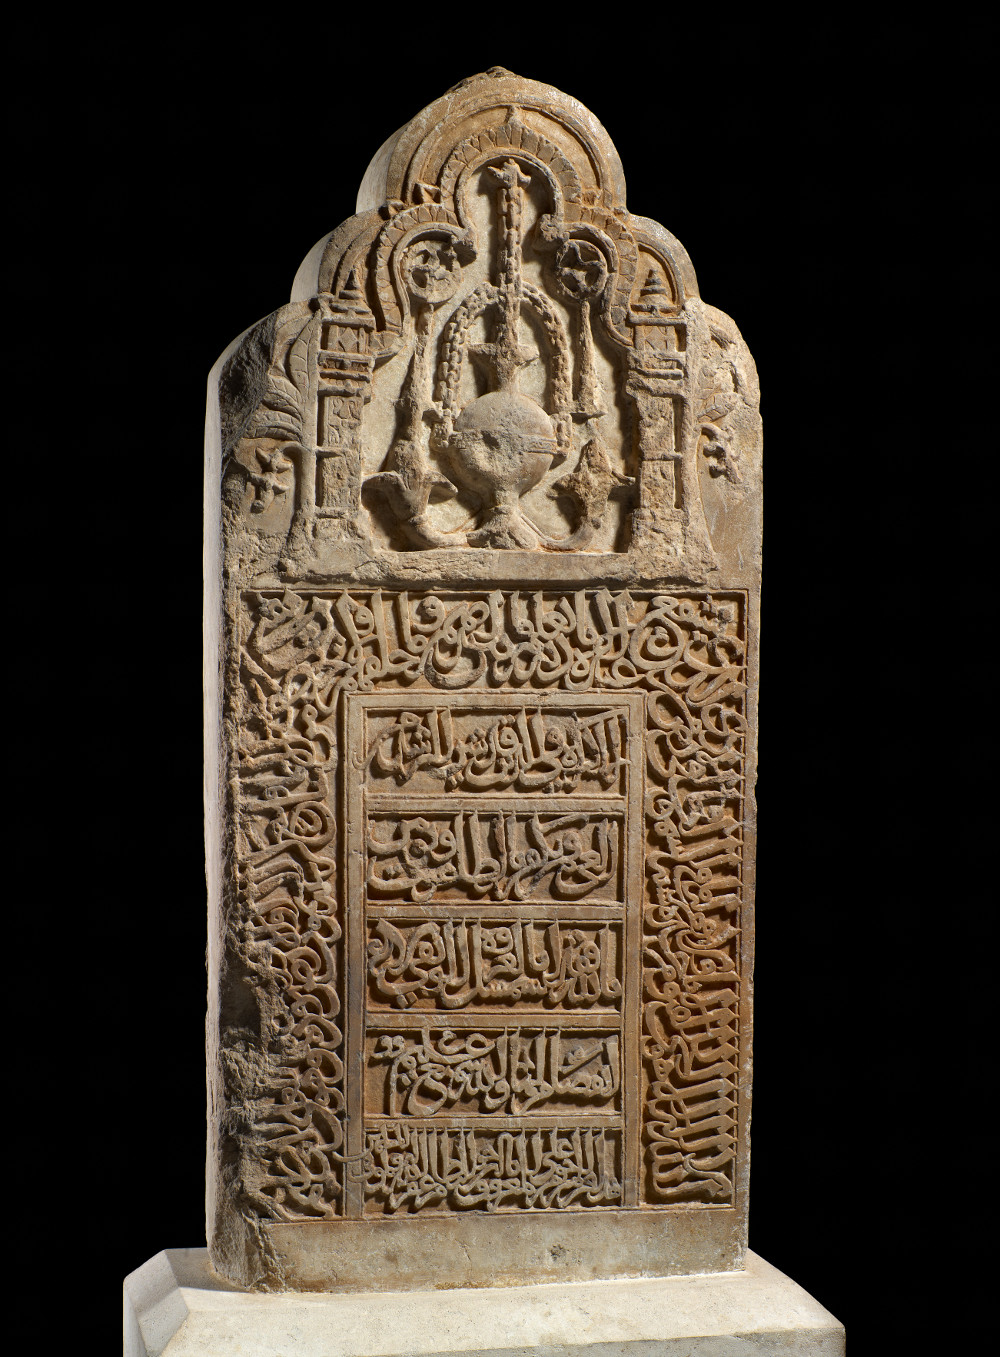 Islamic gravestone  - MarbleAD 1400-99Probably made in Cambay, India; found in Aden, YemenBritish Museum, donated by Messrs Newman, Hunt & ChristopherThis gravestone in the shape of a prayer niche was found 3,000 kilometres away from where it was made. It was initially carved in the port city of Cambay in Gujarat and possibly personalised later in Yemen with the name of the deceased: Abu'l-Hassan. Indian-produced tombstones were desirable to Muslims from as far away as the Arabian Peninsula, East Africa and Indonesia. Long journeys across the Indian Ocean meant gravestones could take months or even years to arrive.